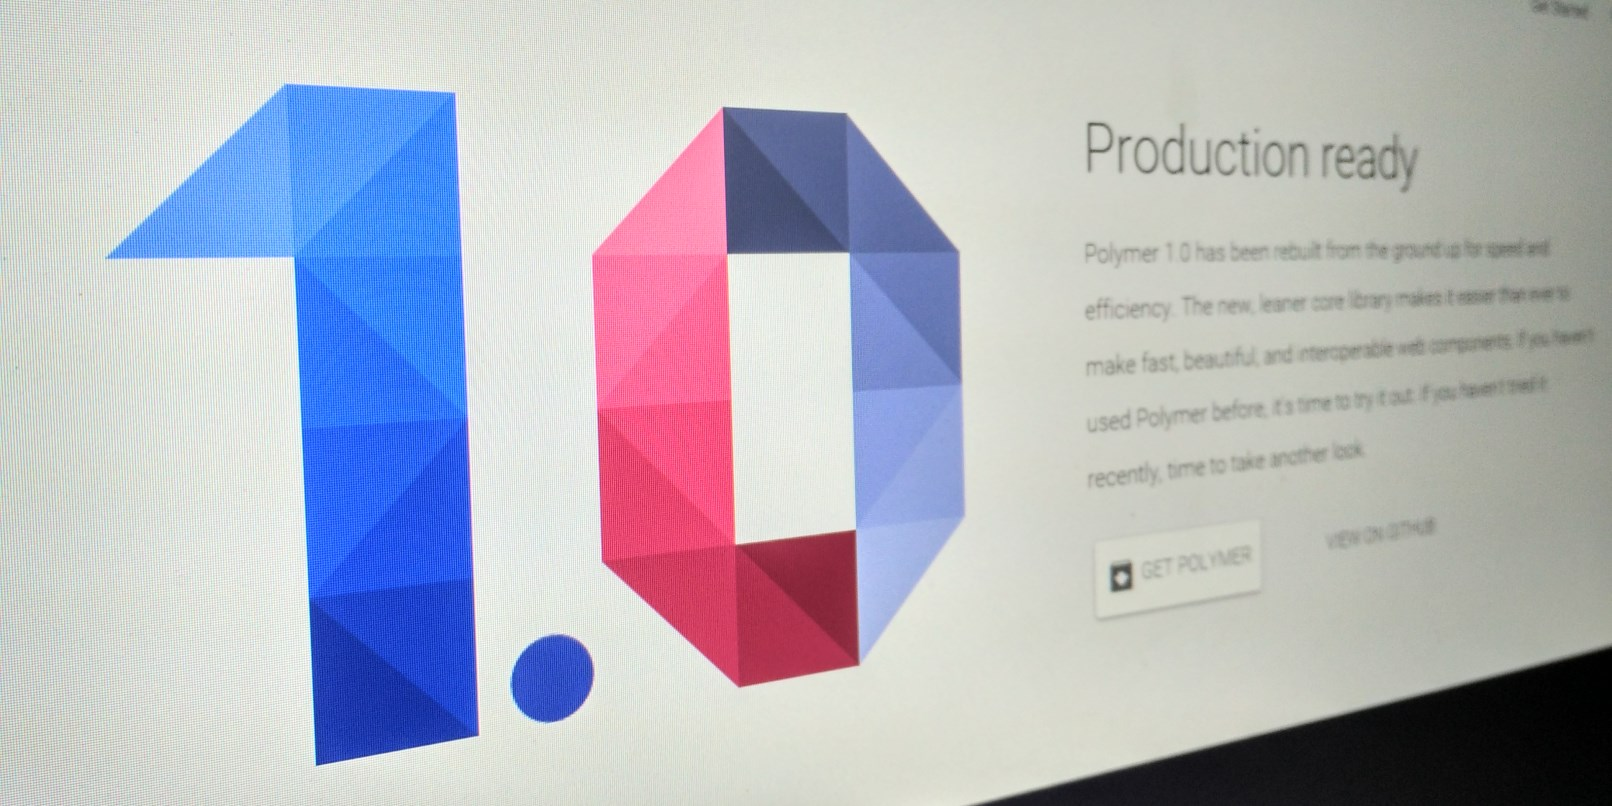 Google's new Polymer library makes it easier to build feature-packed Web apps